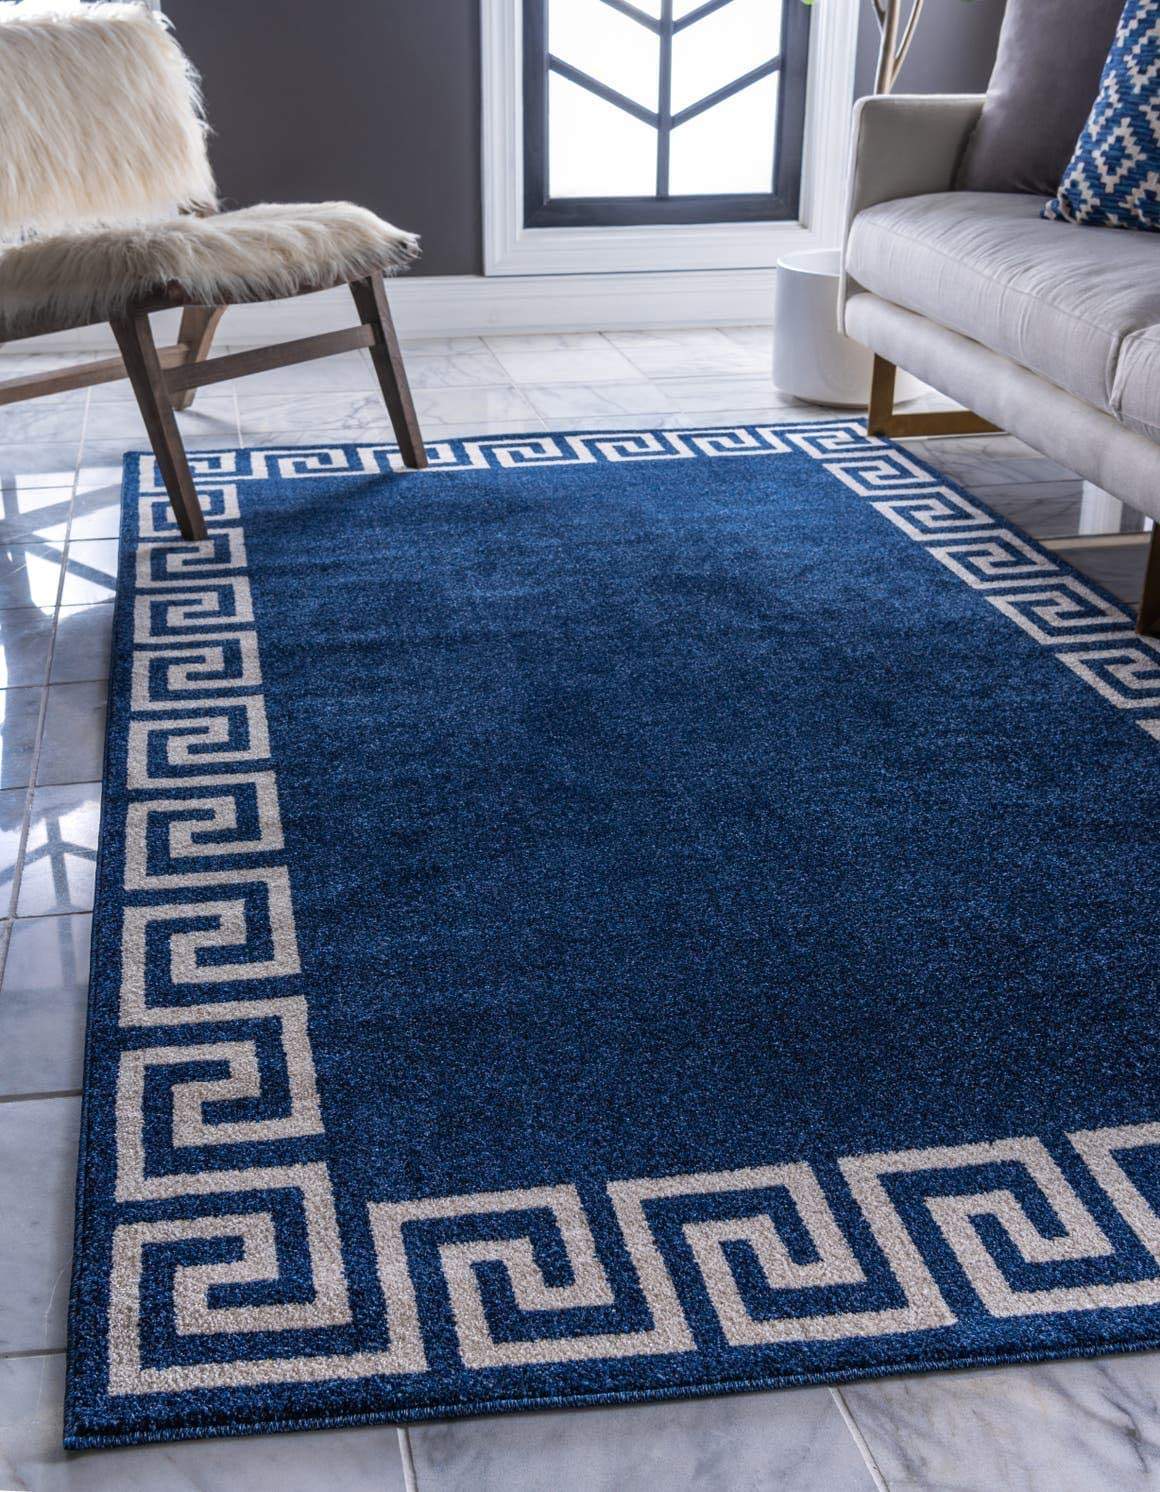 Unique Loom Athens Collection Geometric Casual Modern Border Navy Blue Area Rug 9 0 x 12 0